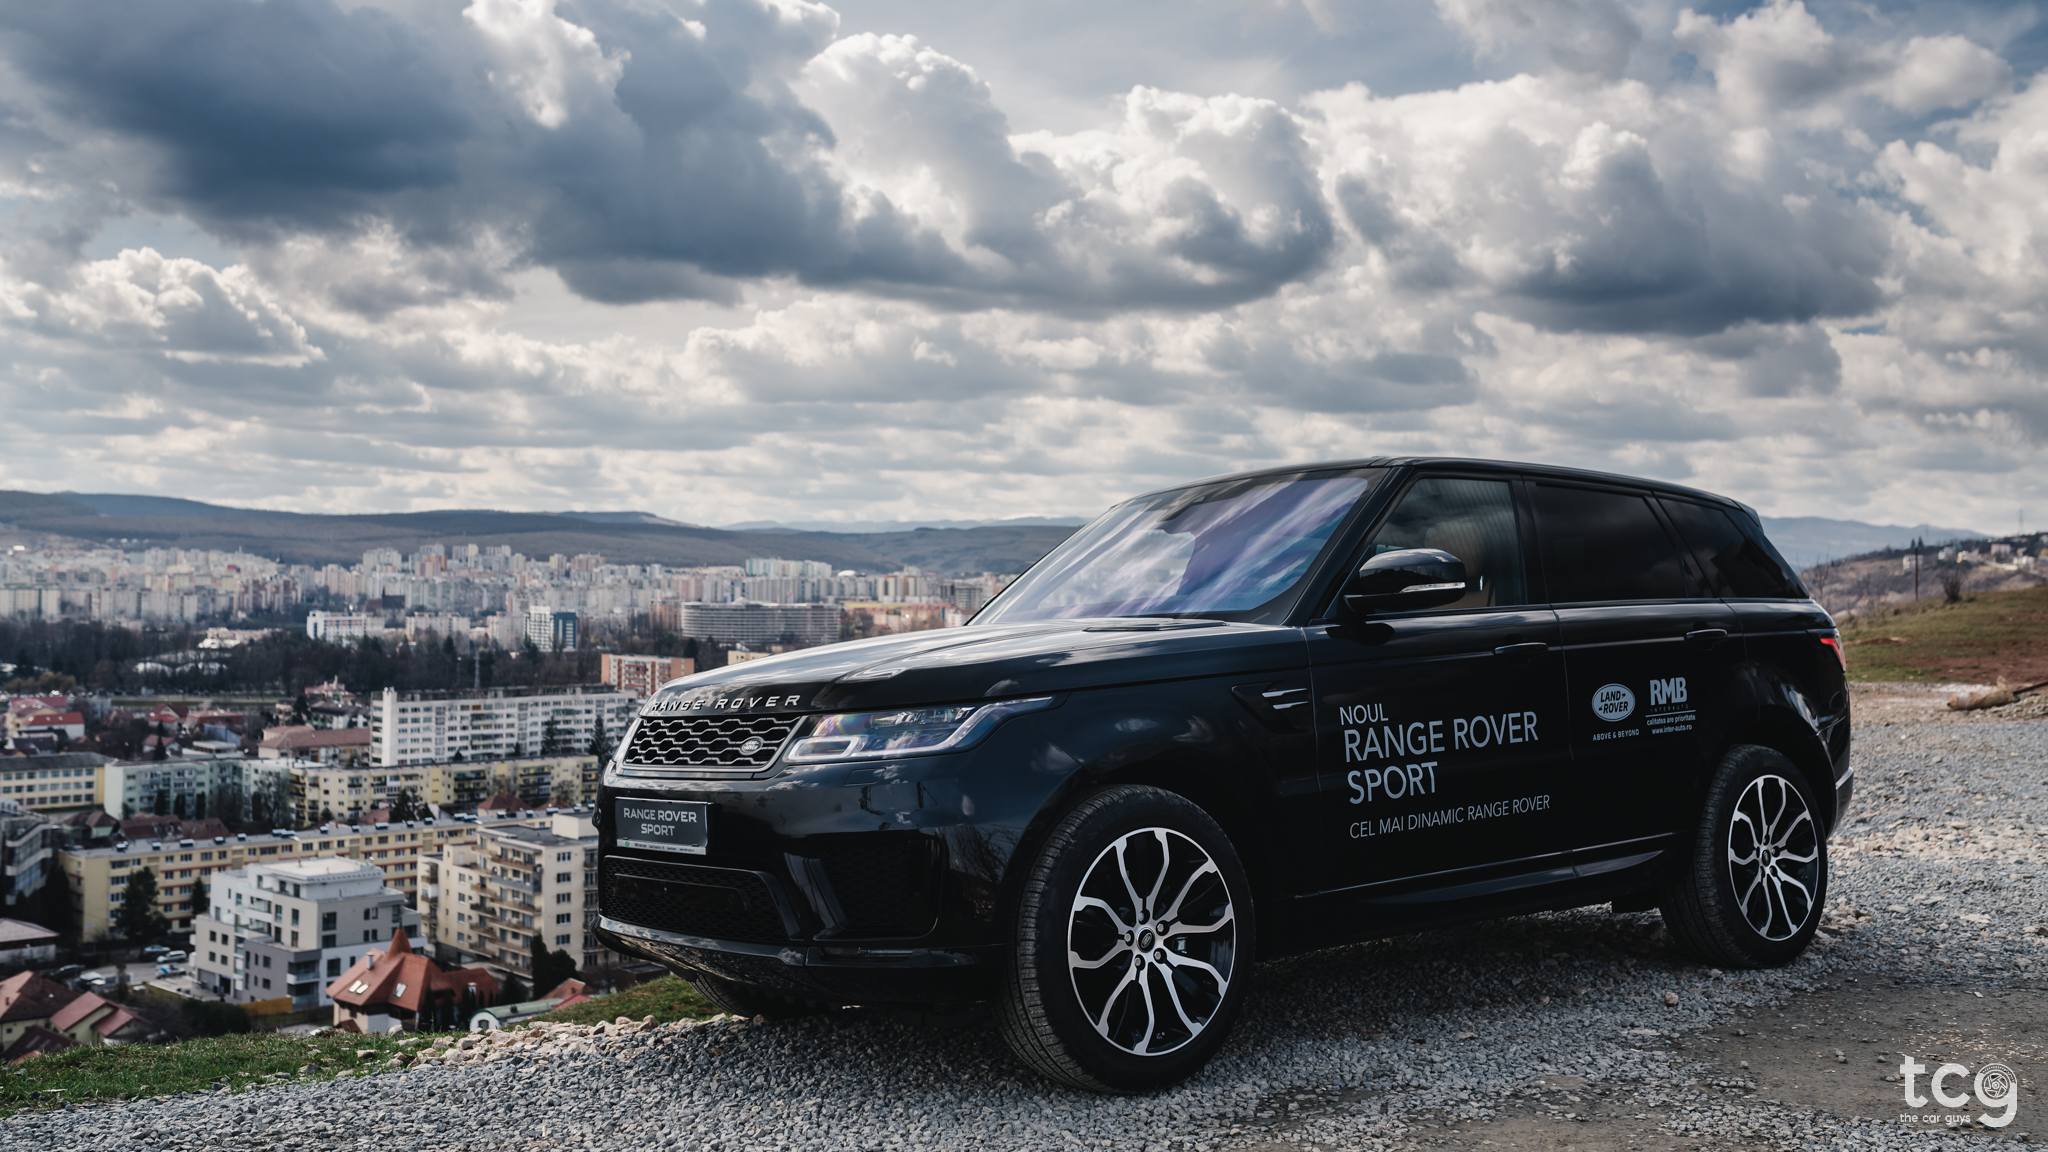 newsfeatures longer ii compounding further landrover of series exterior in smoother unveiling evolution rover land issue was discovery body autotrader styling nomenclature buy a the ca